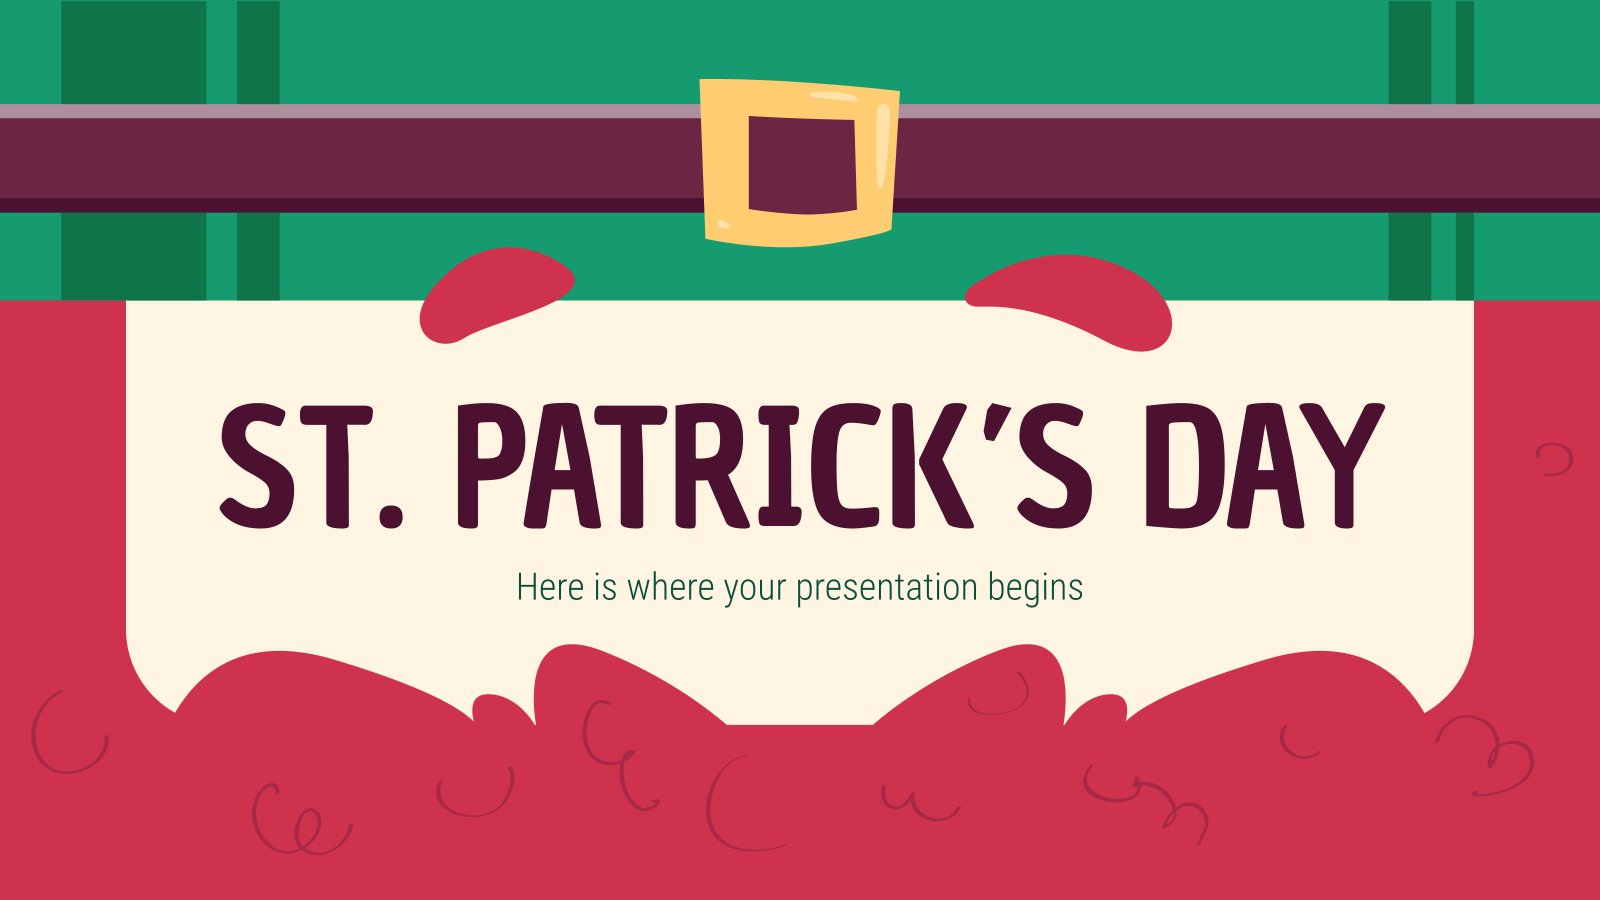 Saint Patrick's Day presentation template